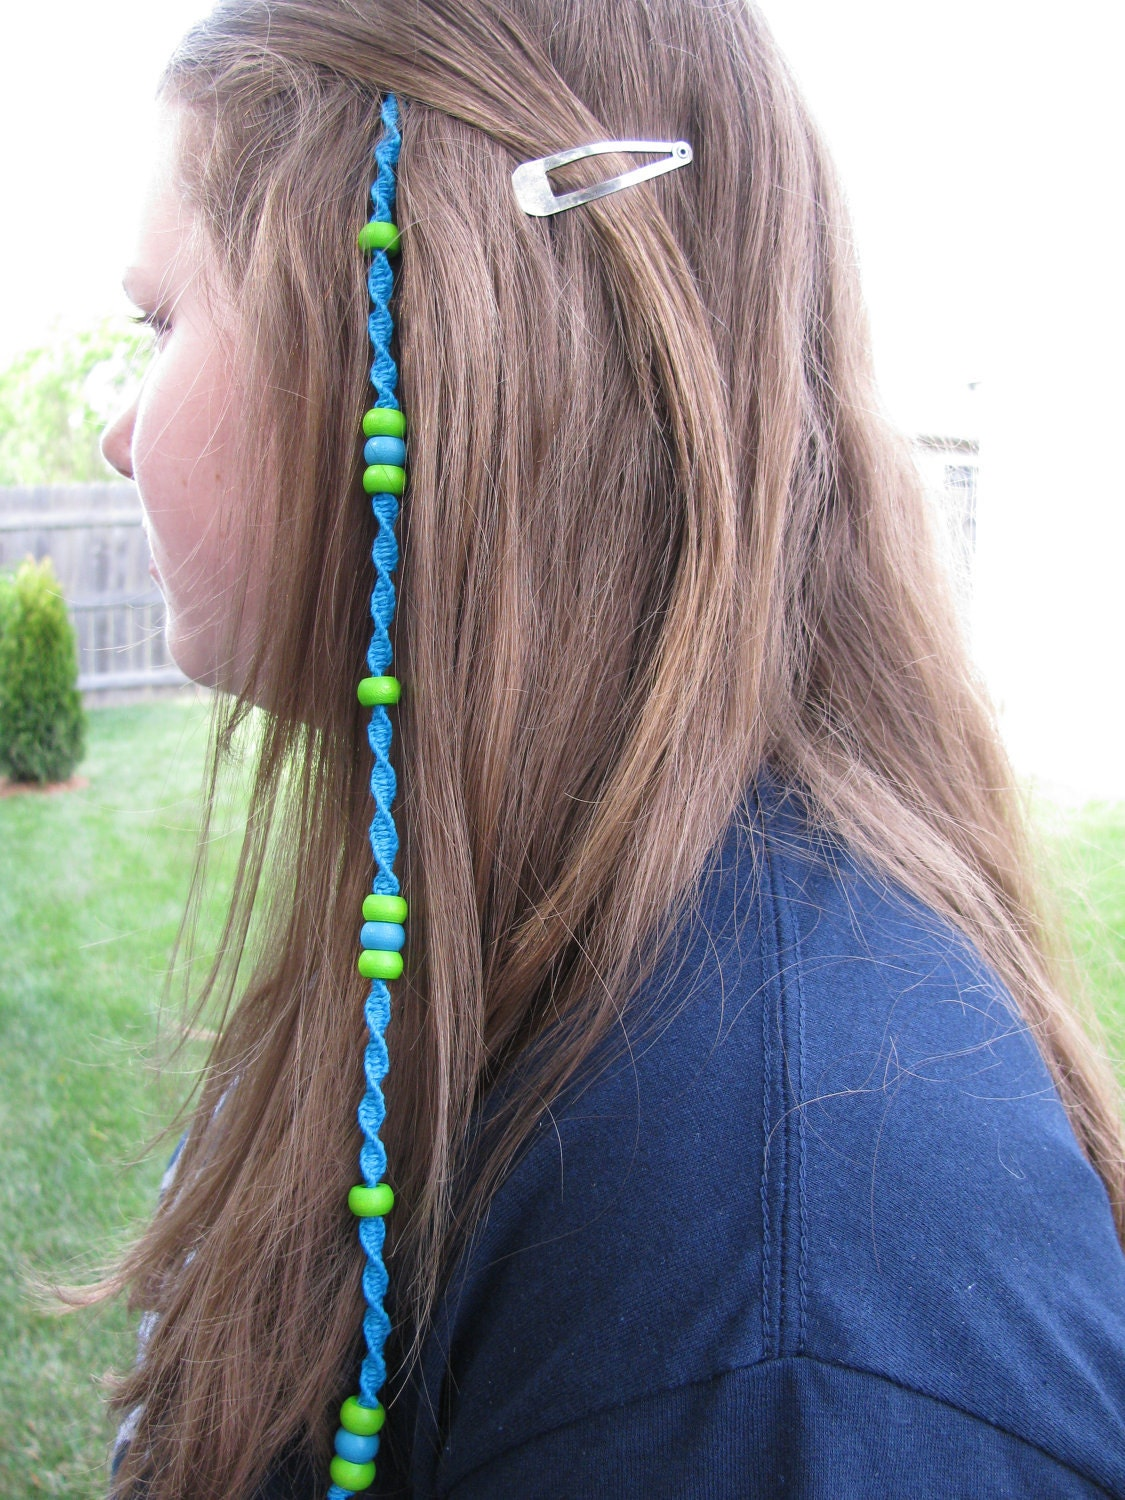 Hemp Hairwrap Extension Removable Atebas Beaded Turquoise